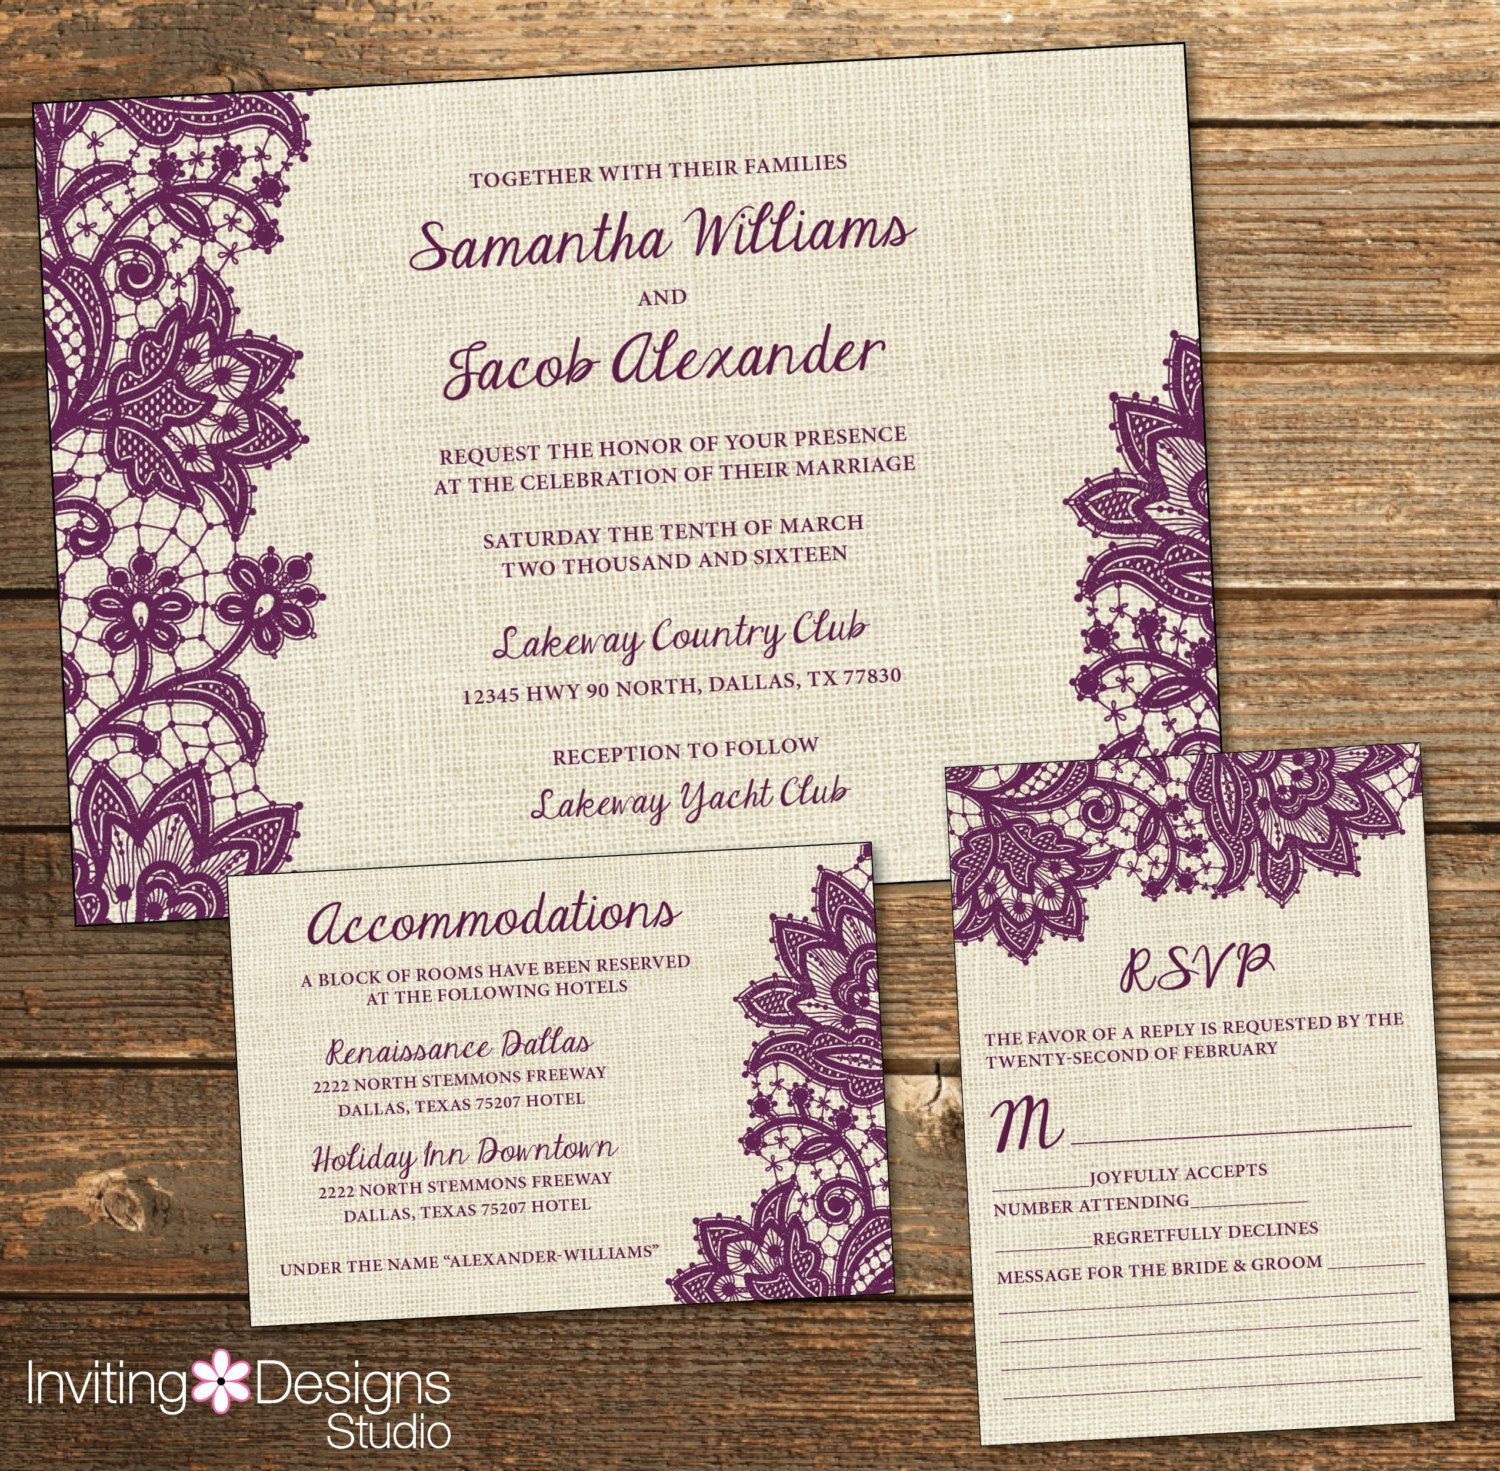 Rustic Wedding Invitation Burlap Lace Eggplant Purple Purple